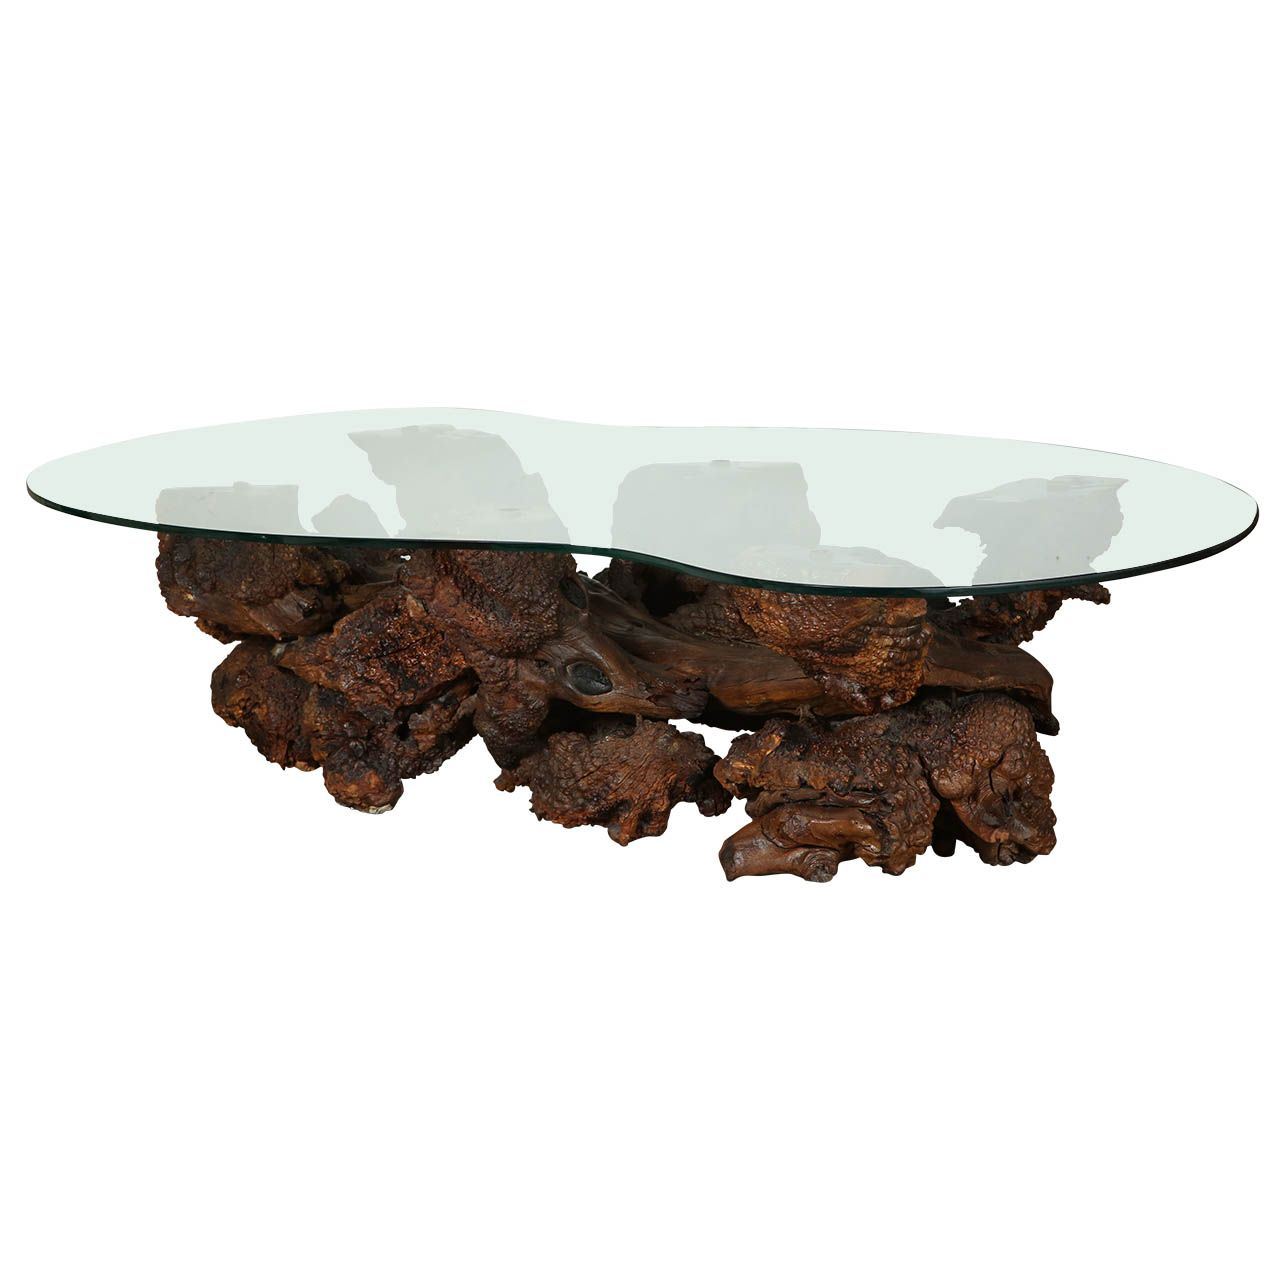 Spectacular Sculptural Large Burl Driftwood Coffee Table | From a unique collection of antique and modern coffee and cocktail tables at http://www.1stdibs.com/furniture/tables/coffee-tables-cocktail-tables/